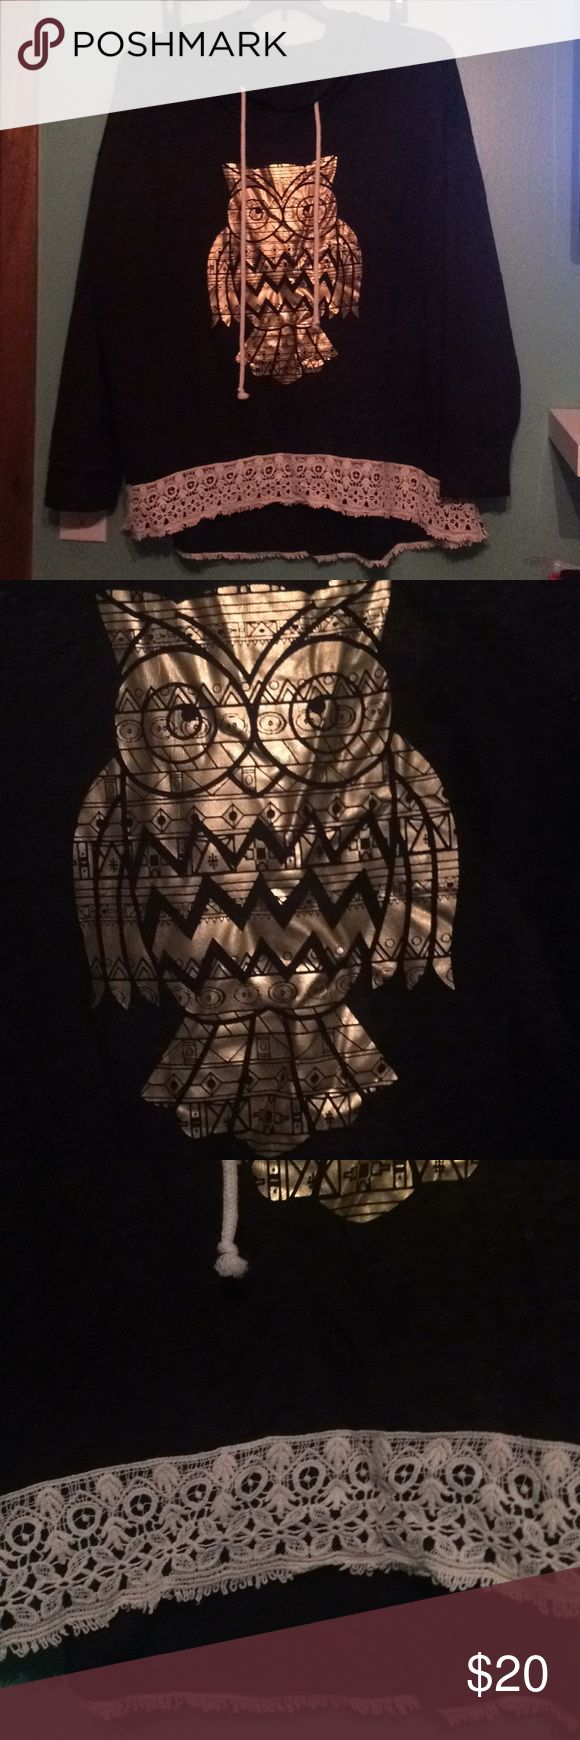 Owl hoodie Gray lightweight hoodie with gold foil owl and lace trim. Boutique purchase. Tops